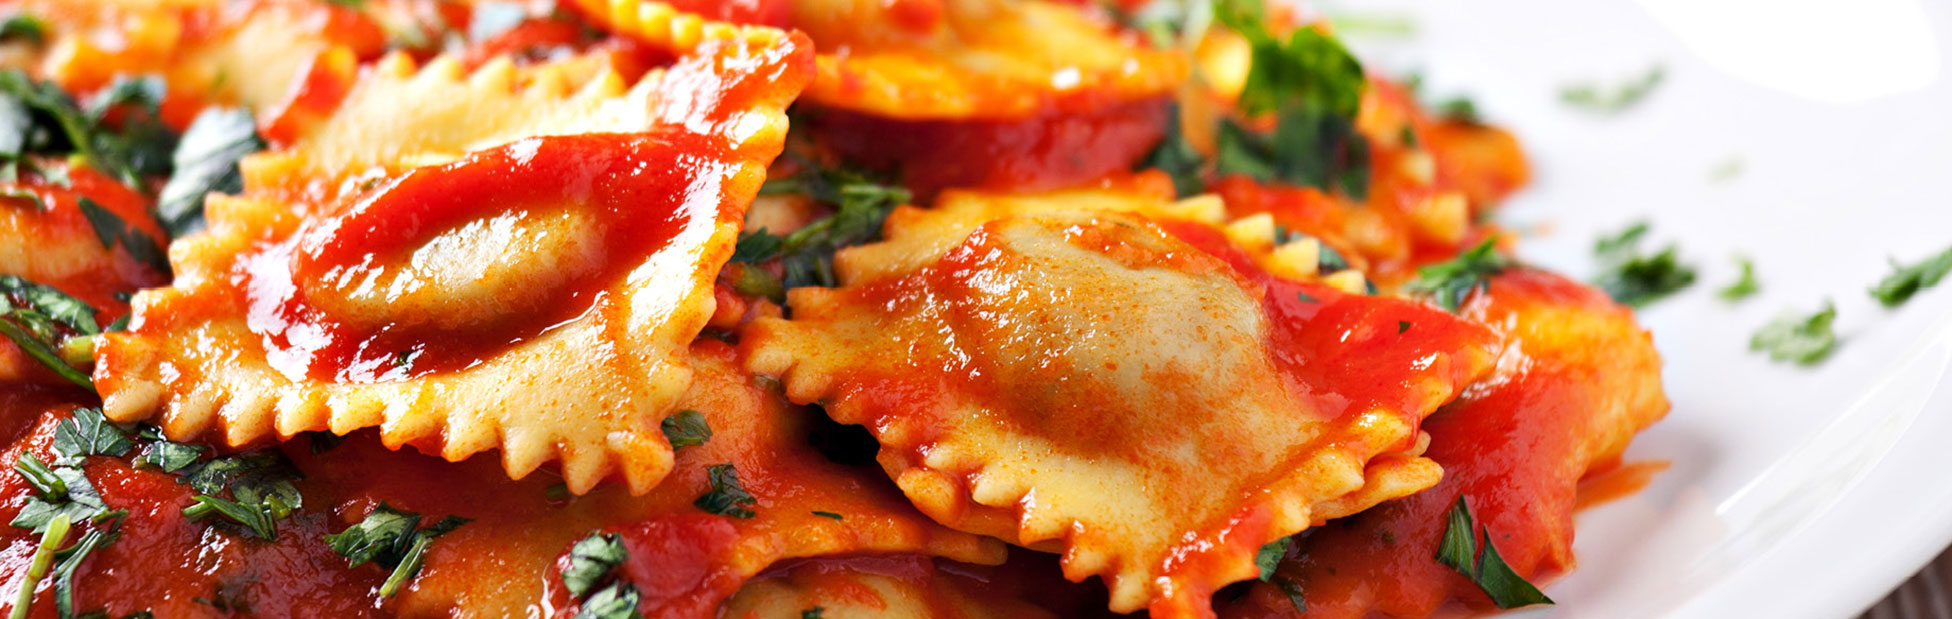 Ravioli served with napoletana sauce